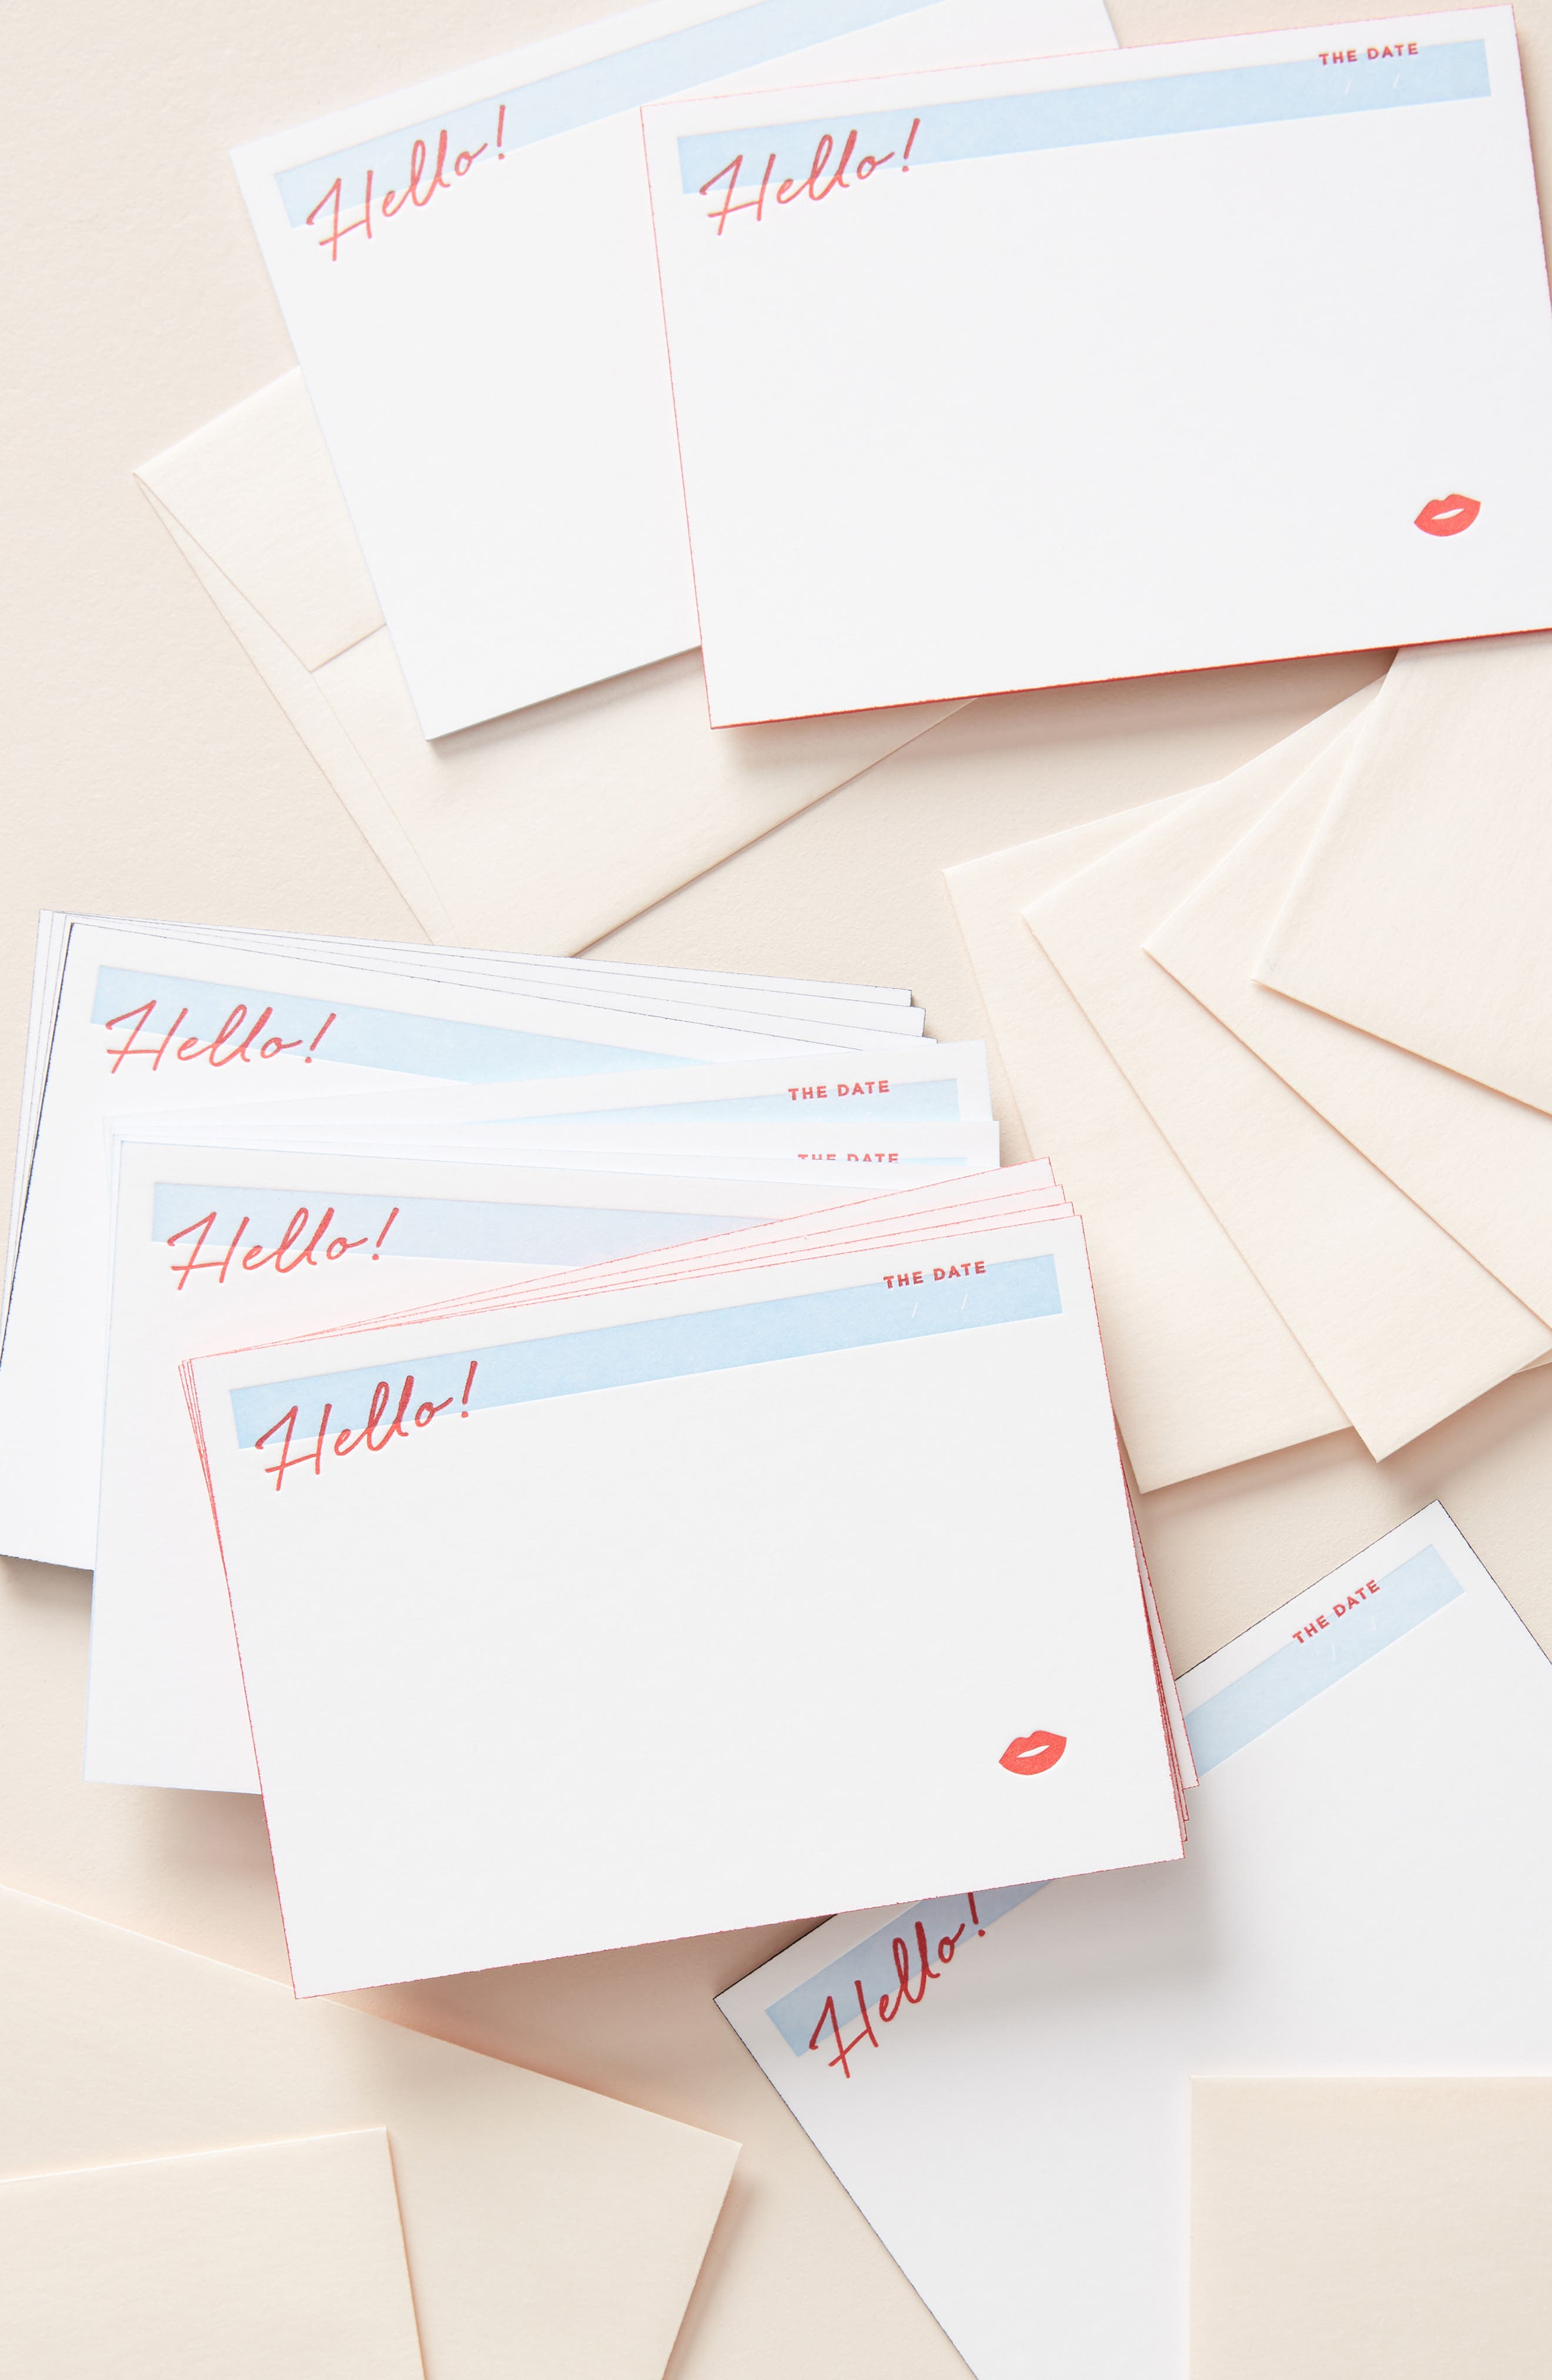 ANTHROPOLOGIE,                             Bisou Set of 15 Greeting Cards,                             Main thumbnail 1, color,                             RED